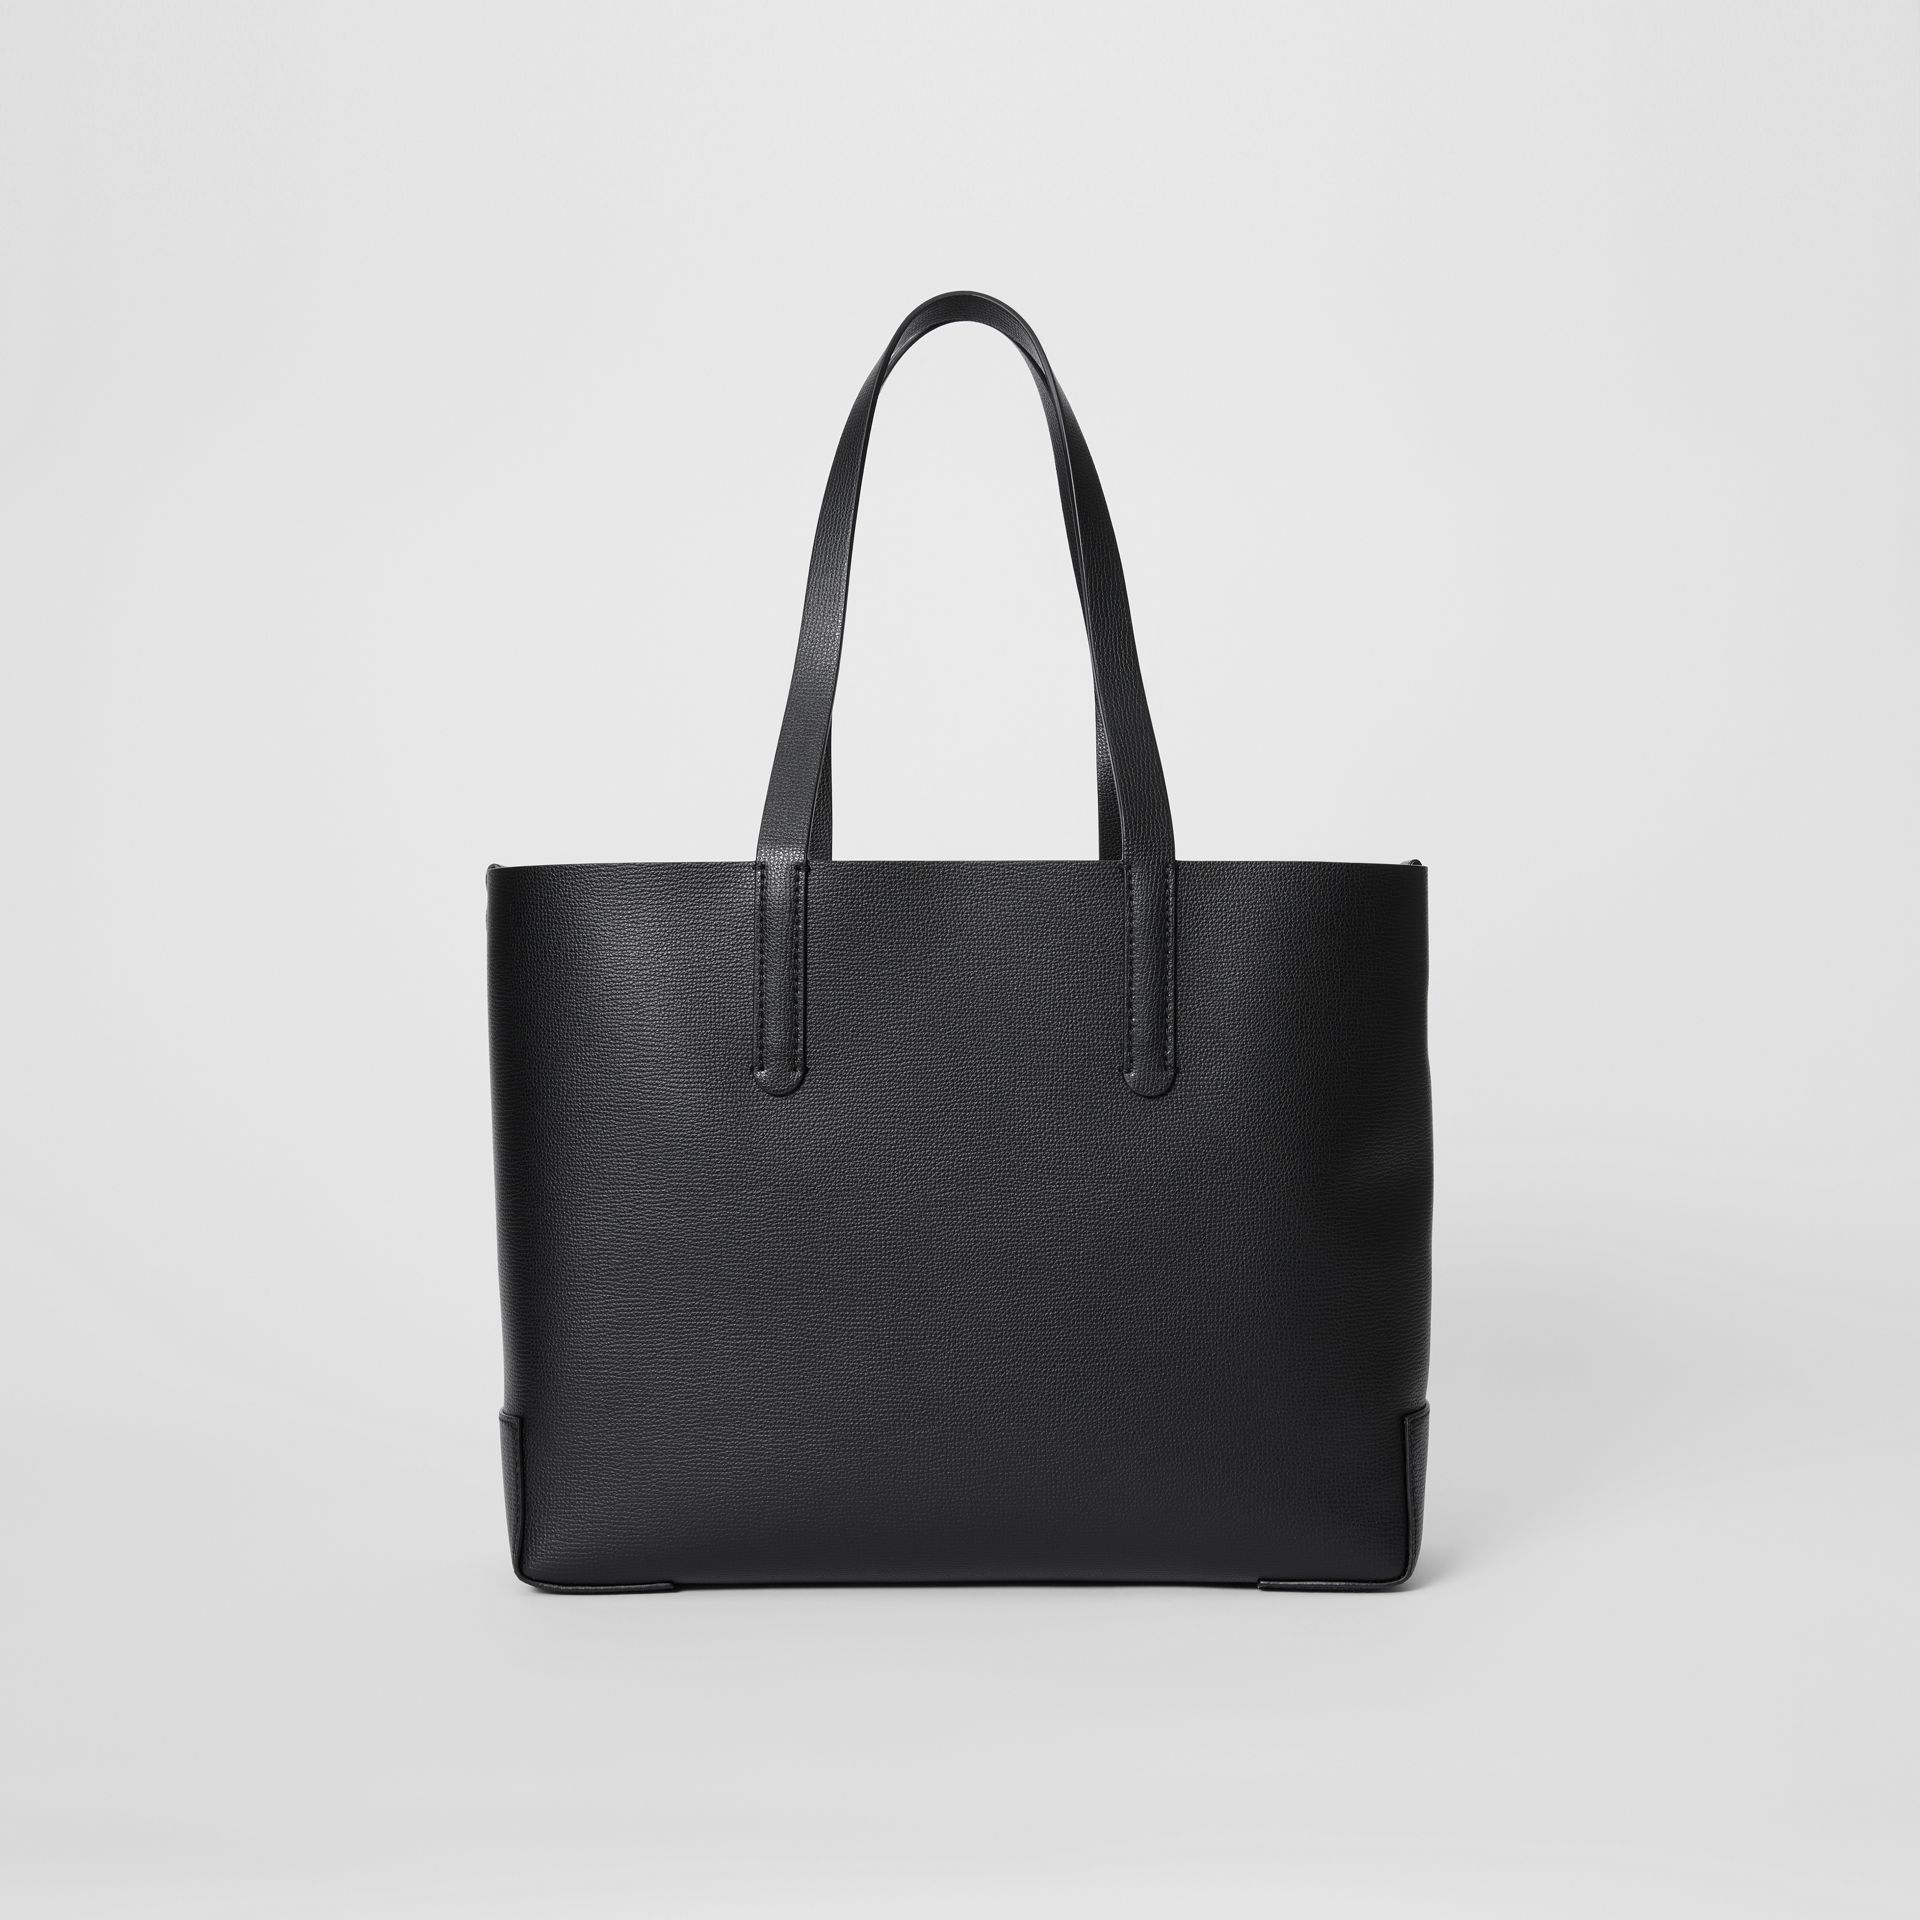 Embossed Monogram Motif Leather Tote in Black - Women | Burberry United Kingdom - gallery image 7